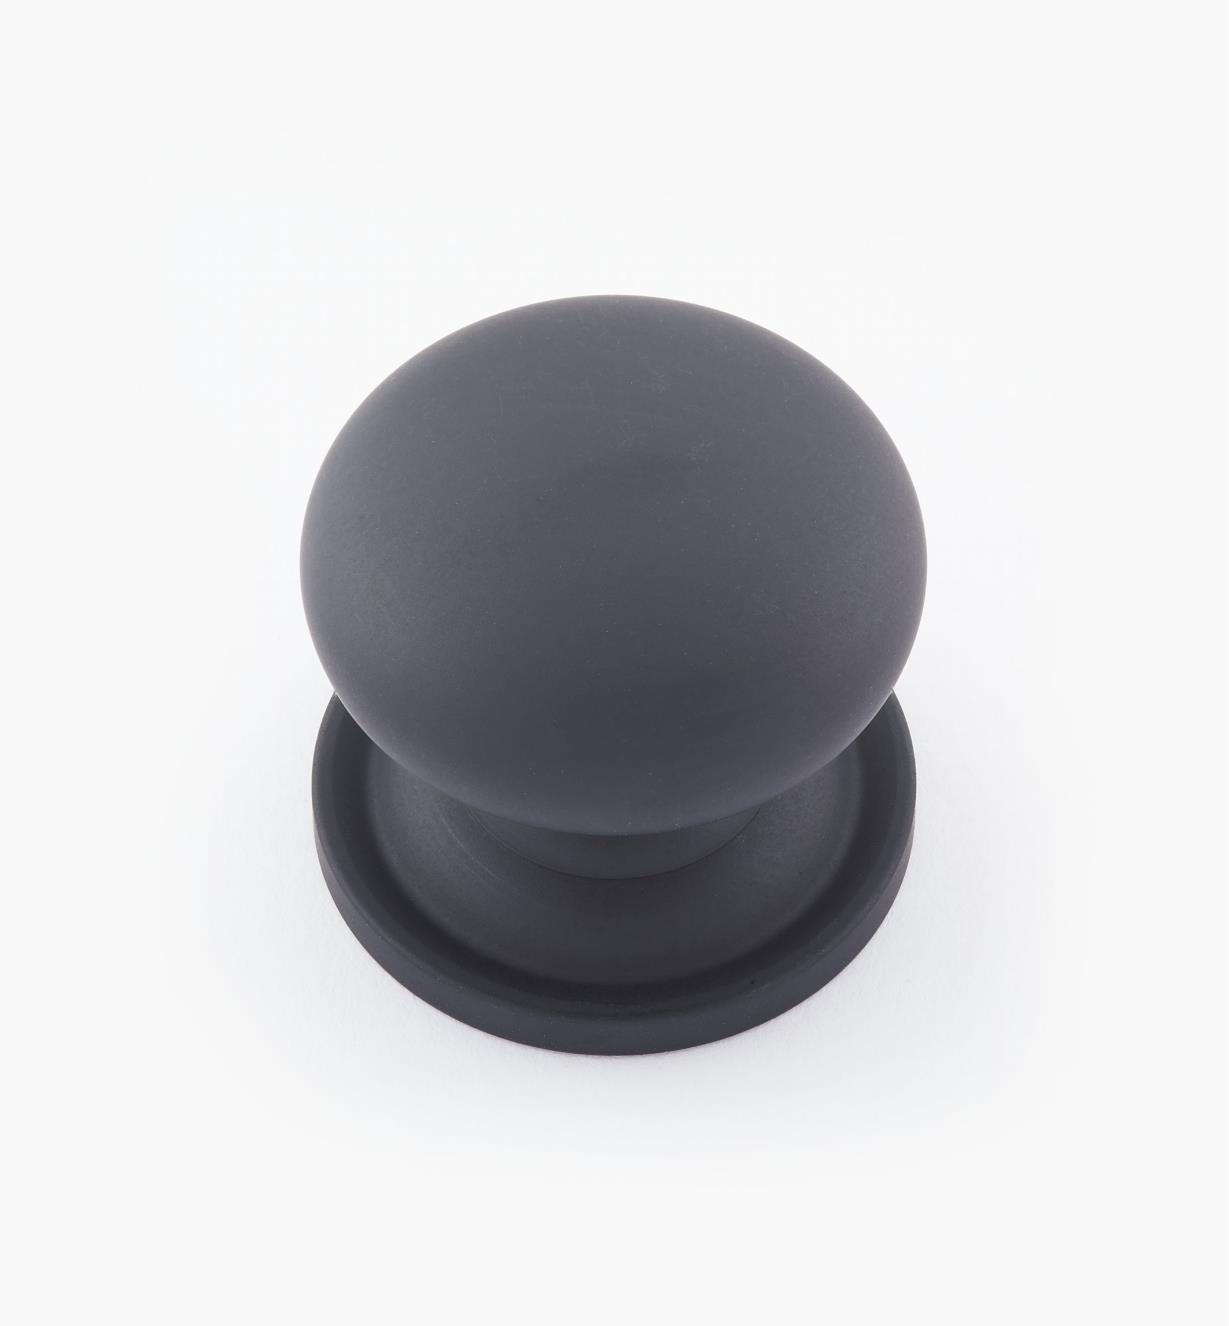 "02W1532 - Oil-Rubbed Bronze Suite - 1 3/16"" x 1 1/8"" Round Brass Knob"